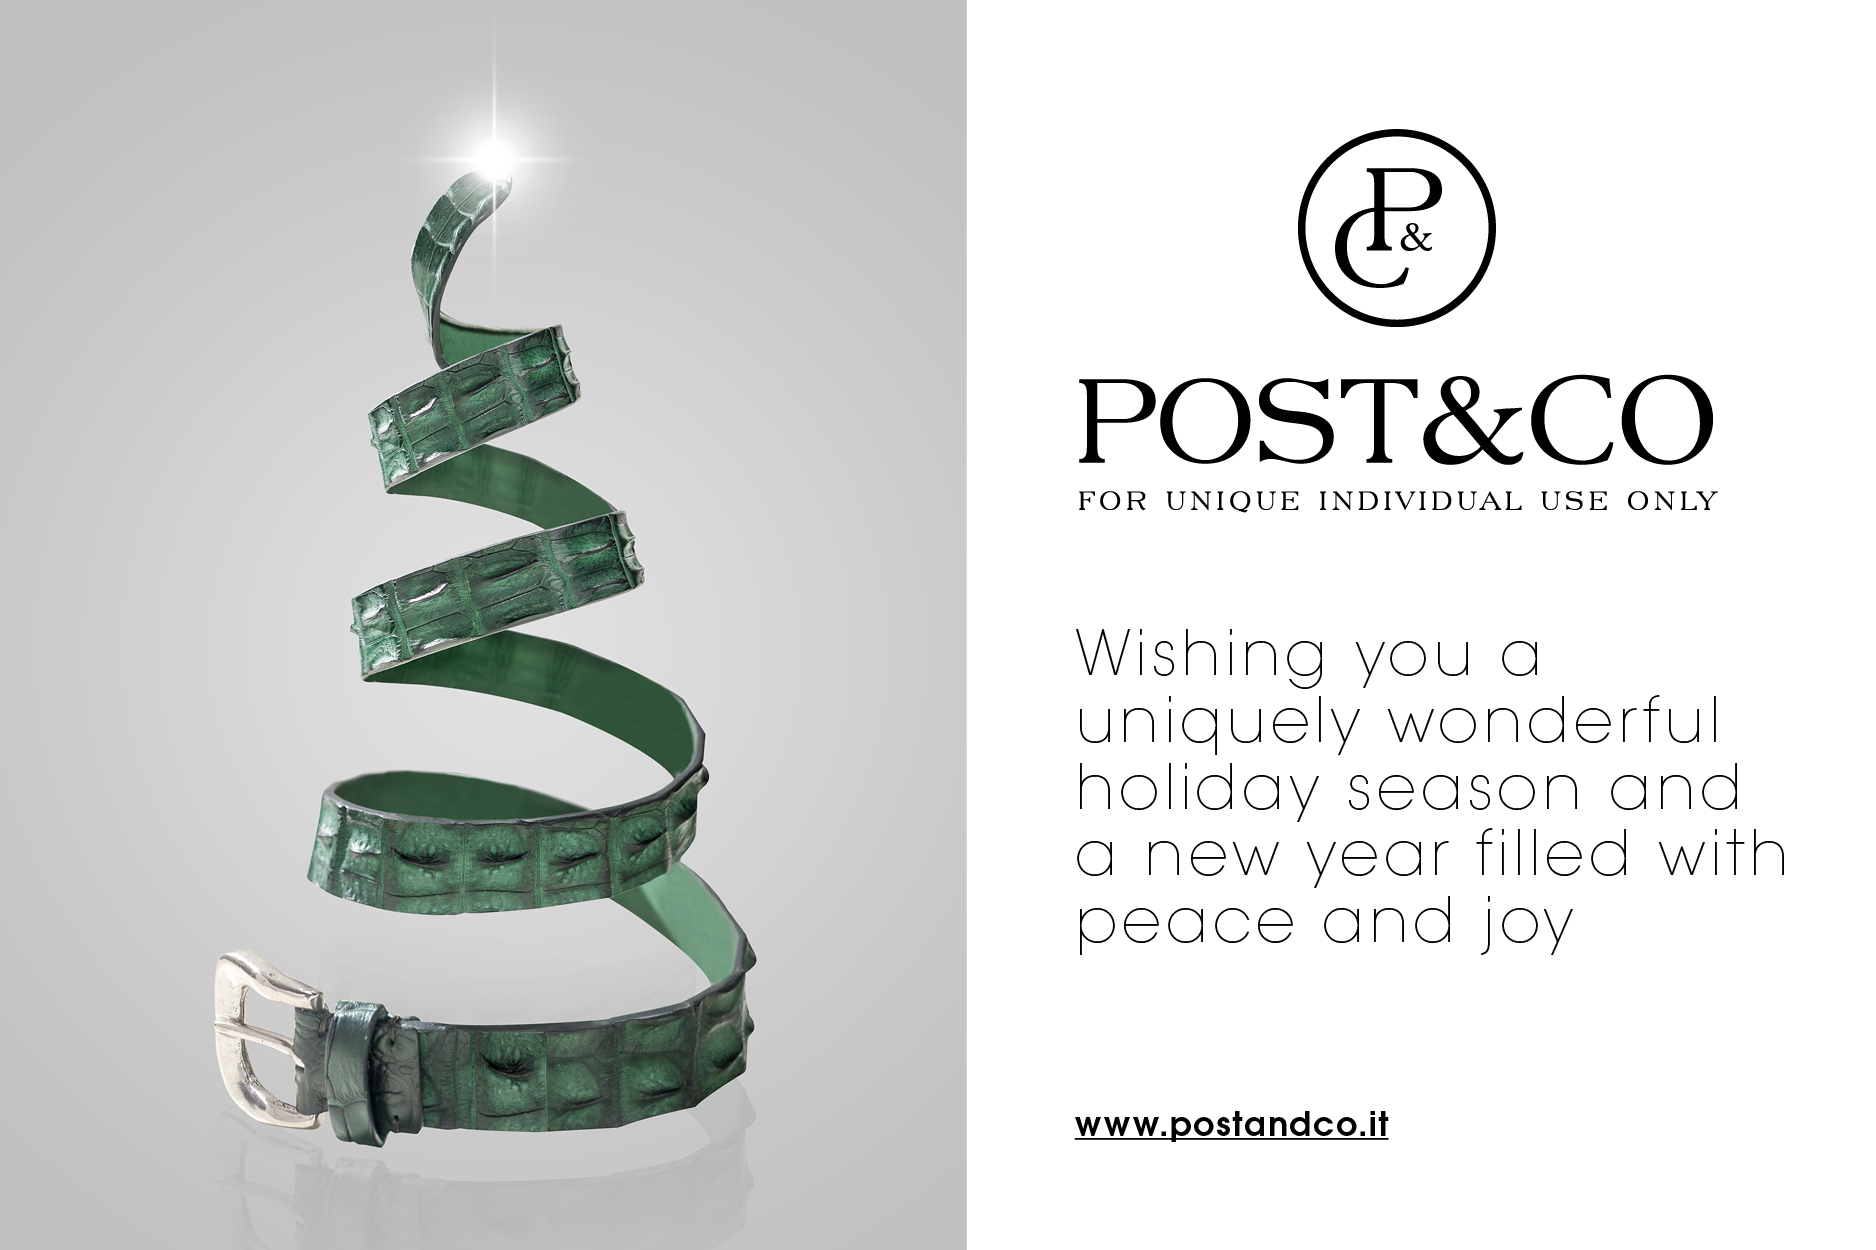 Merry Christmas from Post&Co